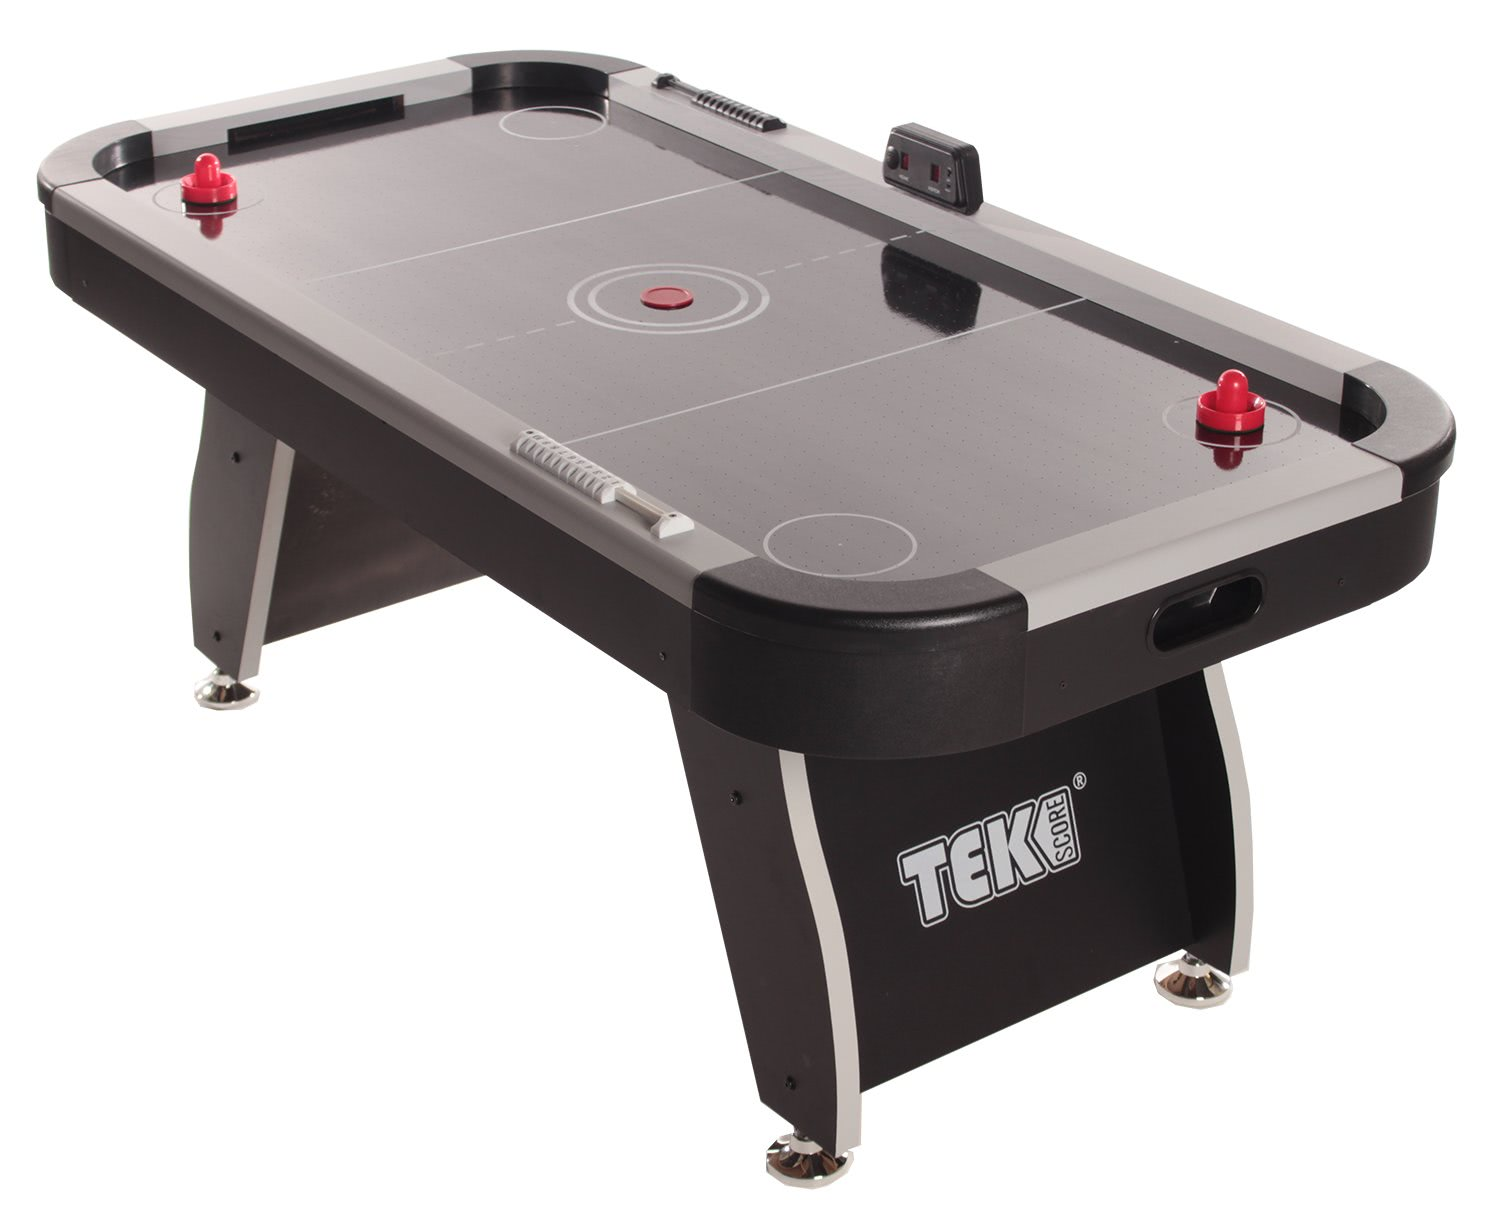 Tekscore Jet 6ft Air Hockey Table | Liberty Games